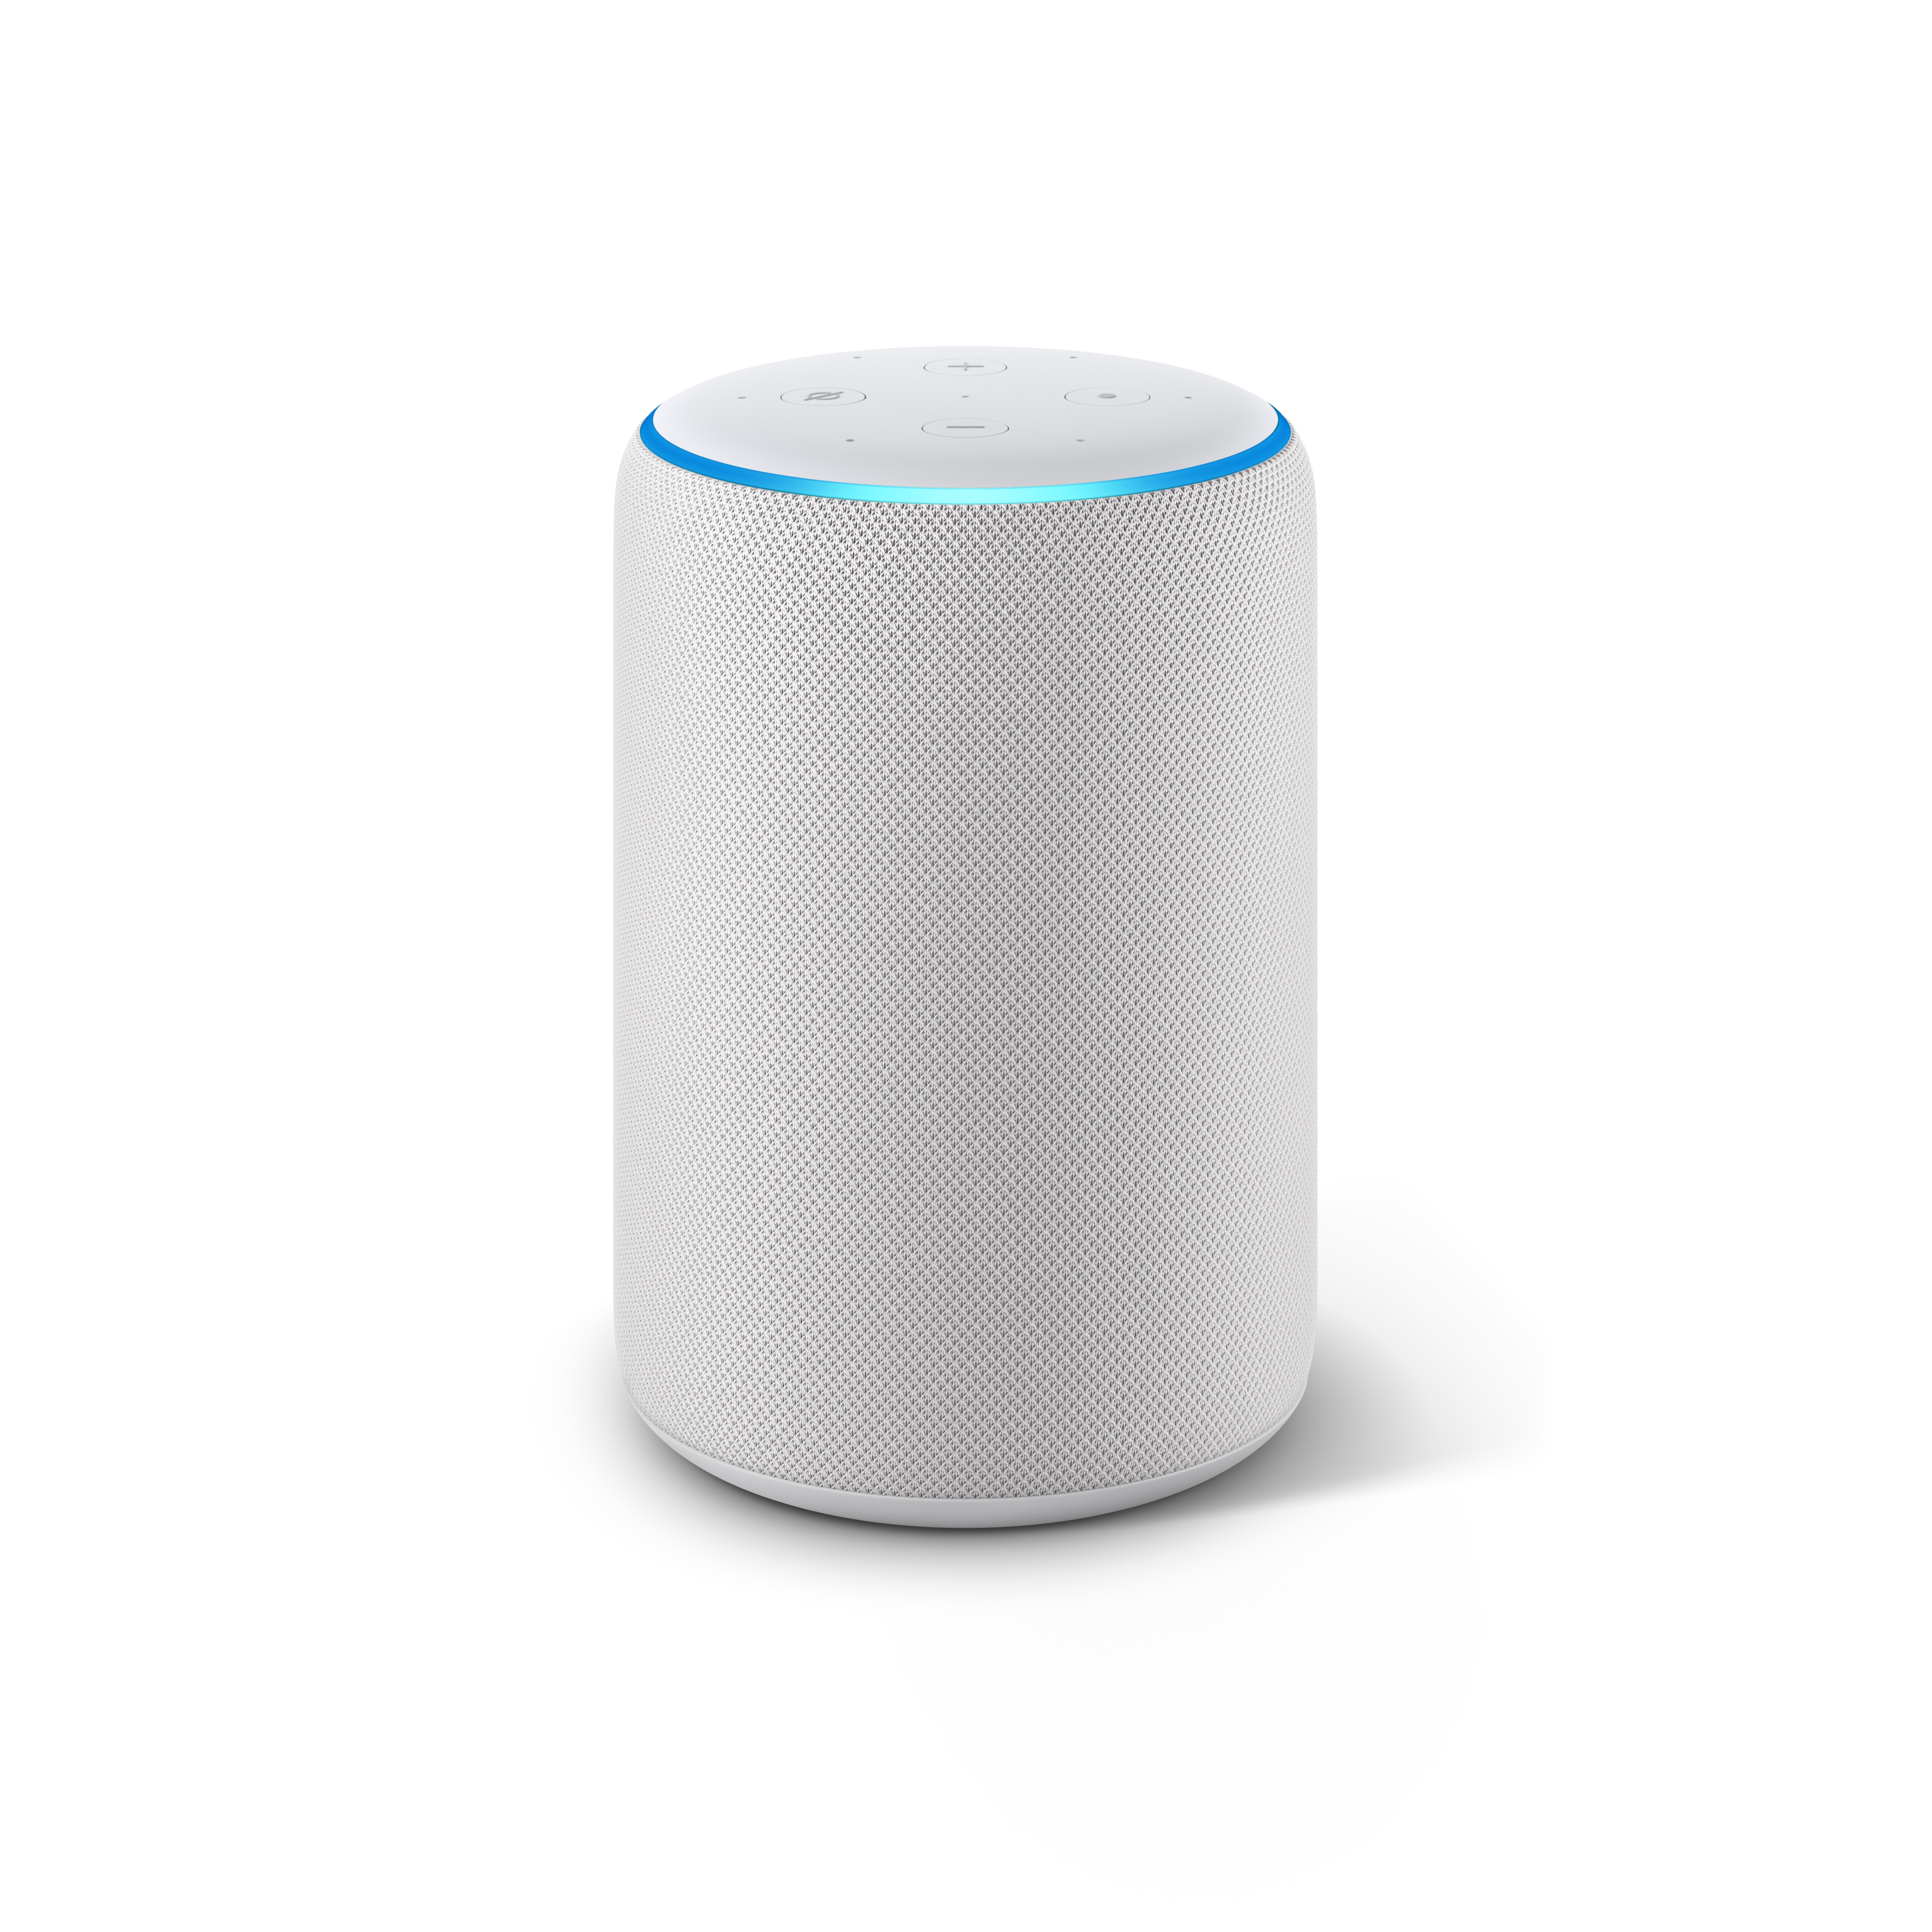 The new Echo Plus features a fabric design and rounded top as well as offline features. Image: Amazon